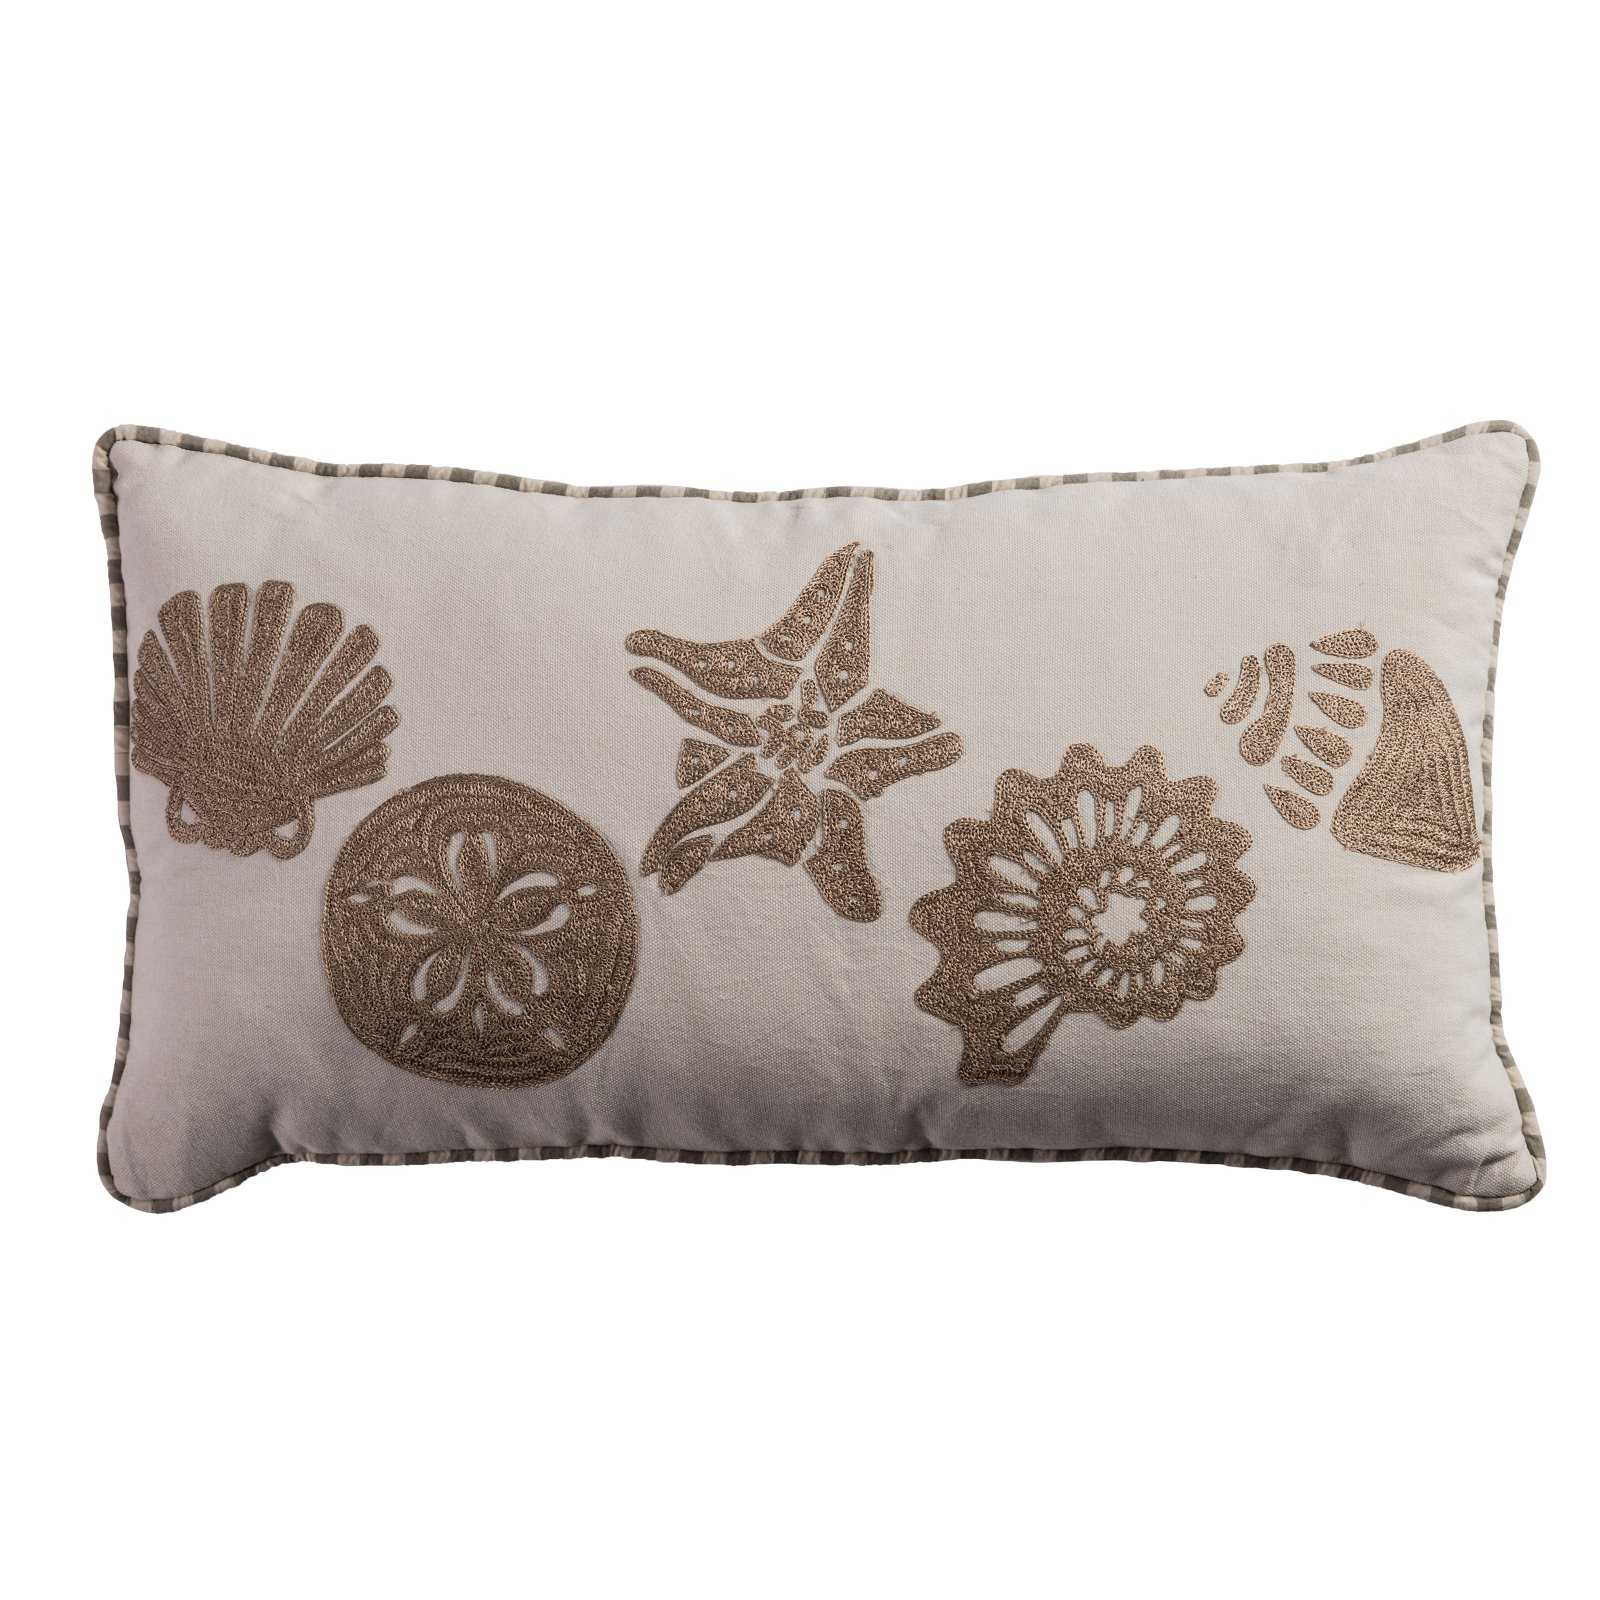 "Rizzy Home One Of A Kind Pillow 11"" x 21"" in Light Beige Color"